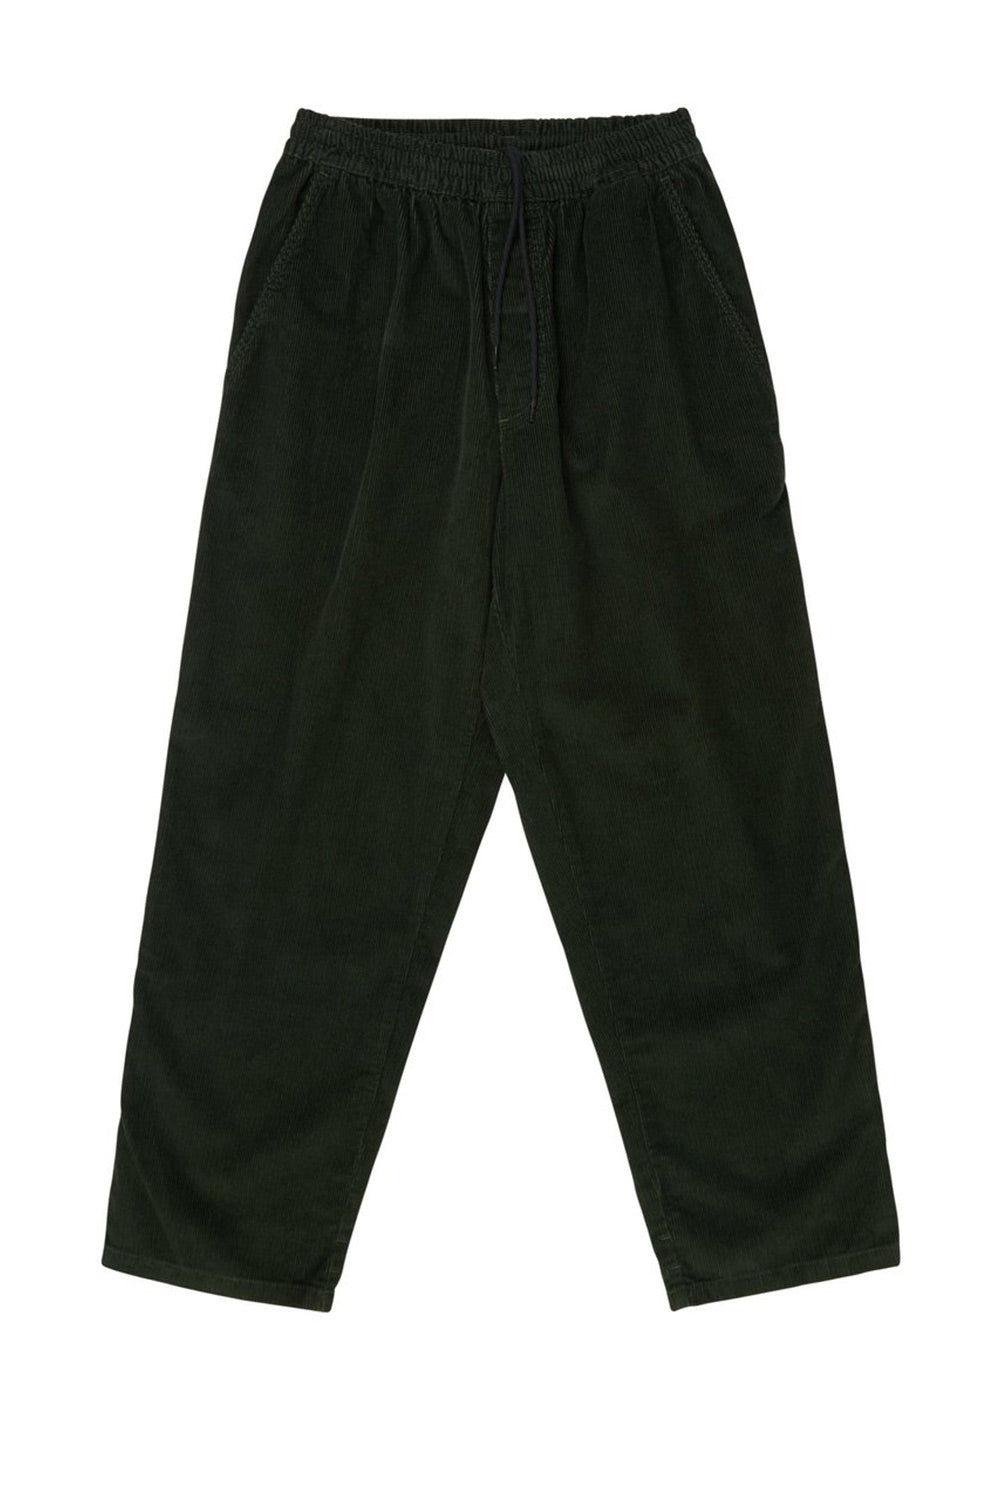 Polar Skate Co Cord Surf Pants